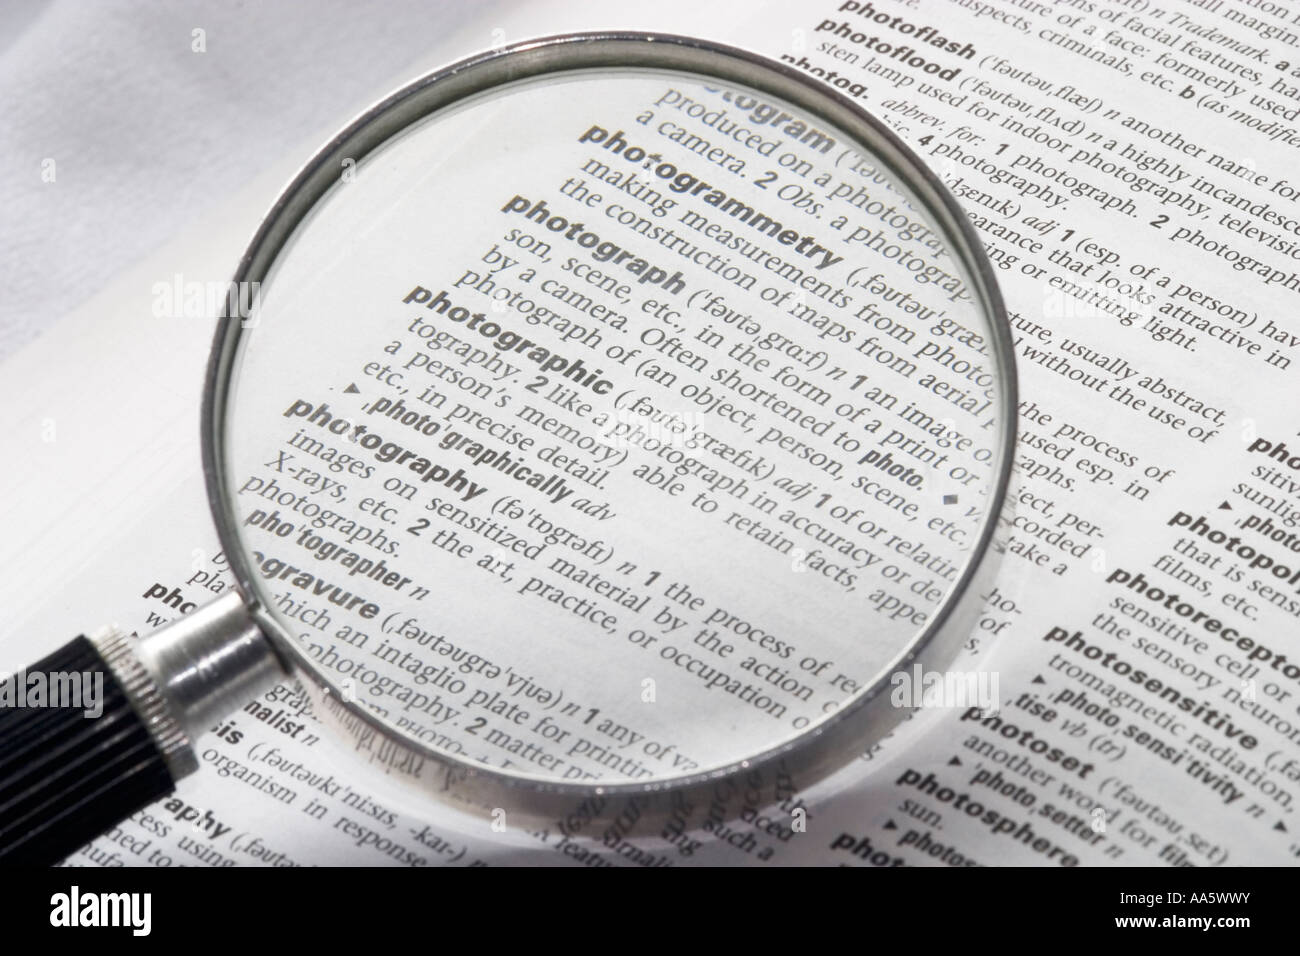 A Black And White Image Of A Magnifying Glass On An Open